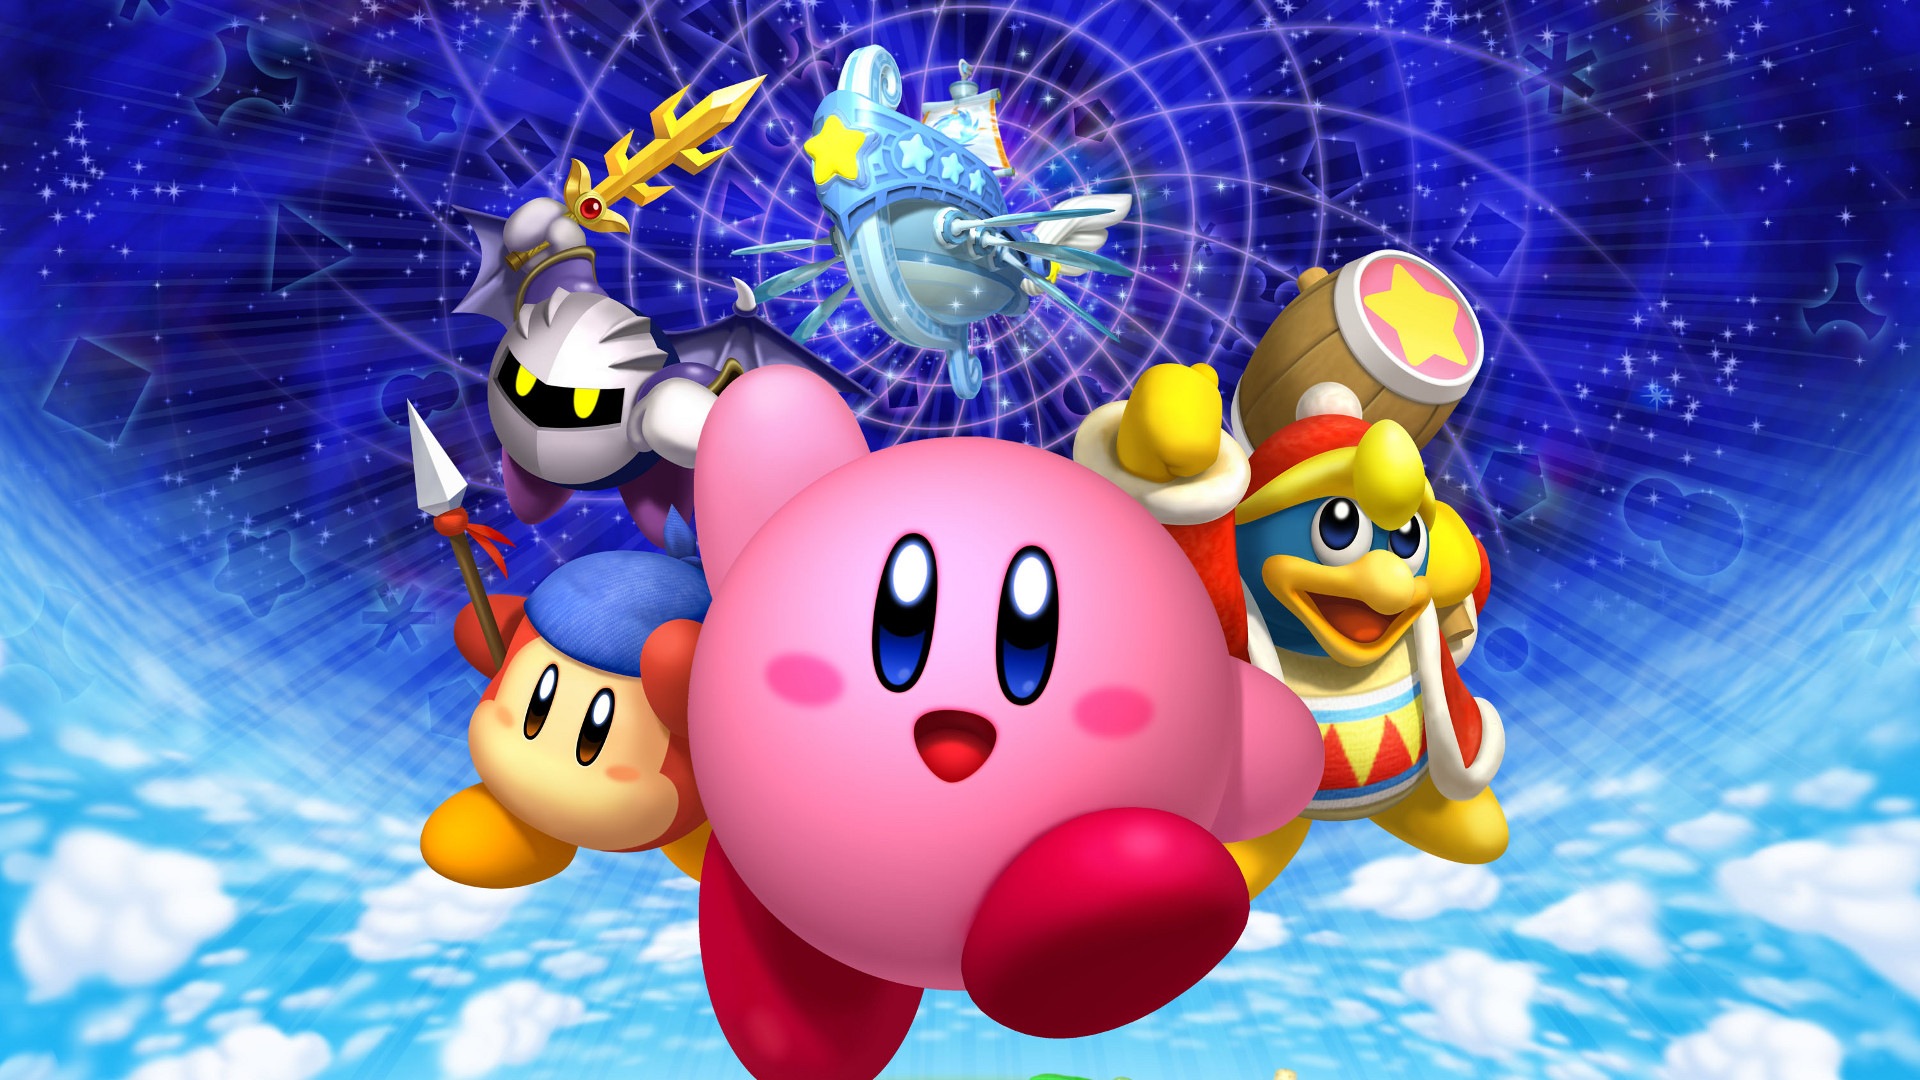 Kirby S Return To Dream Land Hd Wallpaper Background Image